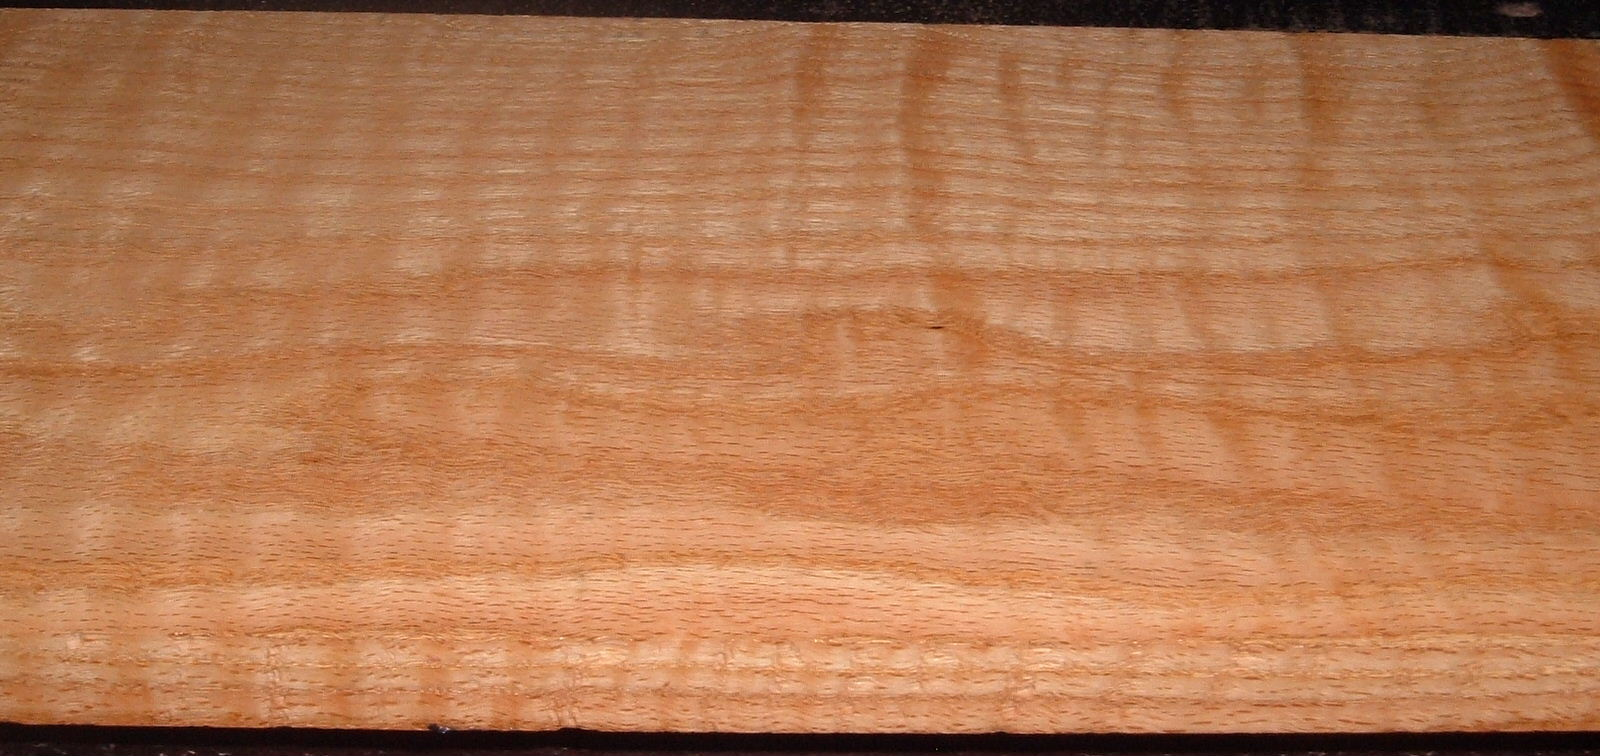 RO2102-4, Curly Figured Tiger Red Oak,15/16x9x51